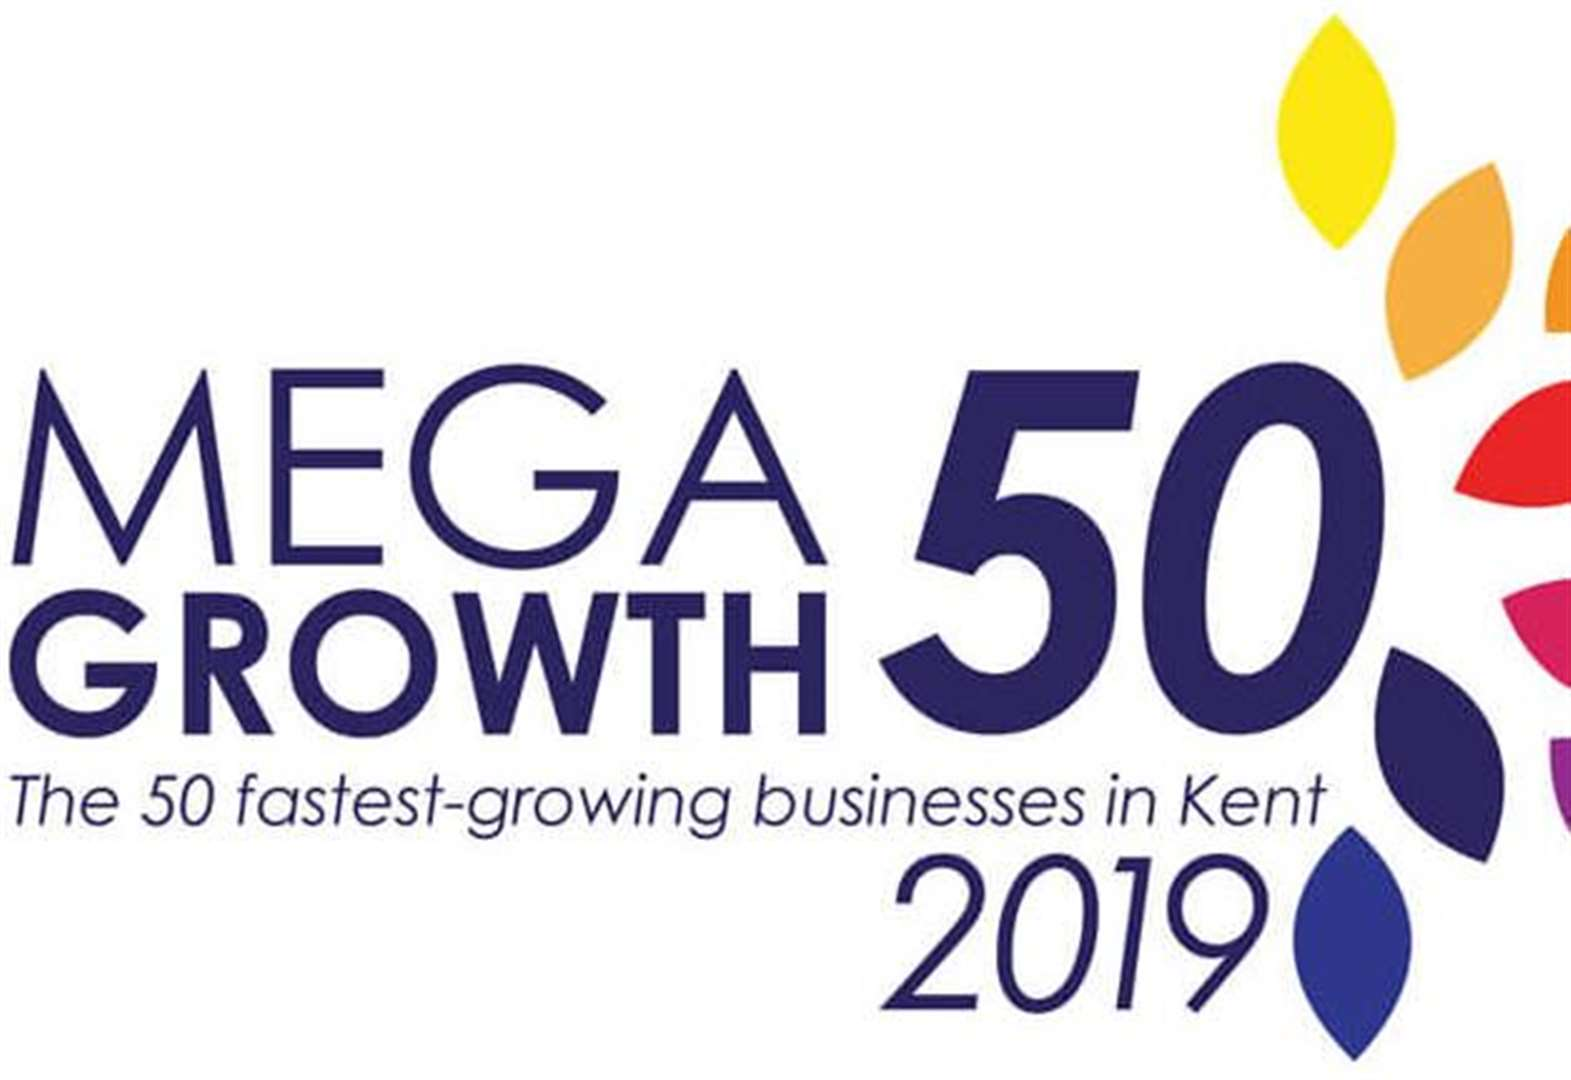 Don't miss MegaGrowth 50 deadline for 2019 list